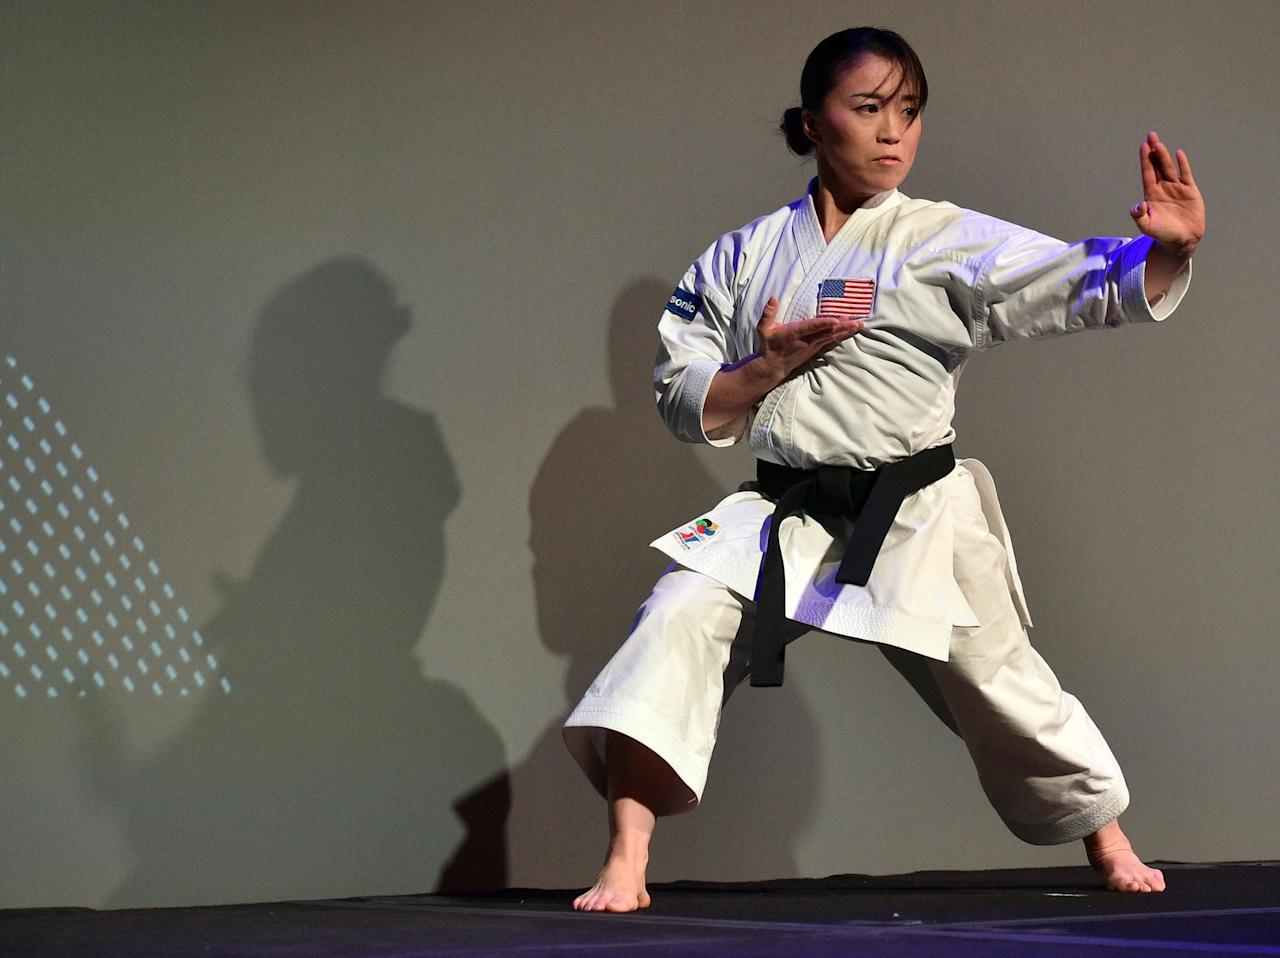 """<p>Kokumai, the first American to <a href=""""https://www.popsugar.com/fitness/sakura-kokumai-qualifies-for-the-2020-olympics-47321703"""" class=""""ga-track"""" data-ga-category=""""Related"""" data-ga-label=""""http://www.popsugar.com/fitness/sakura-kokumai-qualifies-for-the-2020-olympics-47321703"""" data-ga-action=""""In-Line Links"""">qualify for karate in the Olympics</a>, wrote via Instagram on March 23 about her long and difficult journey to get to where she is today. """"<a href=""""http://www.instagram.com/p/B-Fw9D5pNAx/"""" target=""""_blank"""" class=""""ga-track"""" data-ga-category=""""Related"""" data-ga-label=""""http://www.instagram.com/p/B-Fw9D5pNAx/"""" data-ga-action=""""In-Line Links"""">This was not an easy road</a>. It was lonely, things were uncertain. 21 international competition over the course of two years. Traveling and training alone, walking into the ring alone,"""" she wrote. """"Many uncertainties now, but we will get through this. Just need to focus on what we can control and keep working towards our dreams.""""</p>"""